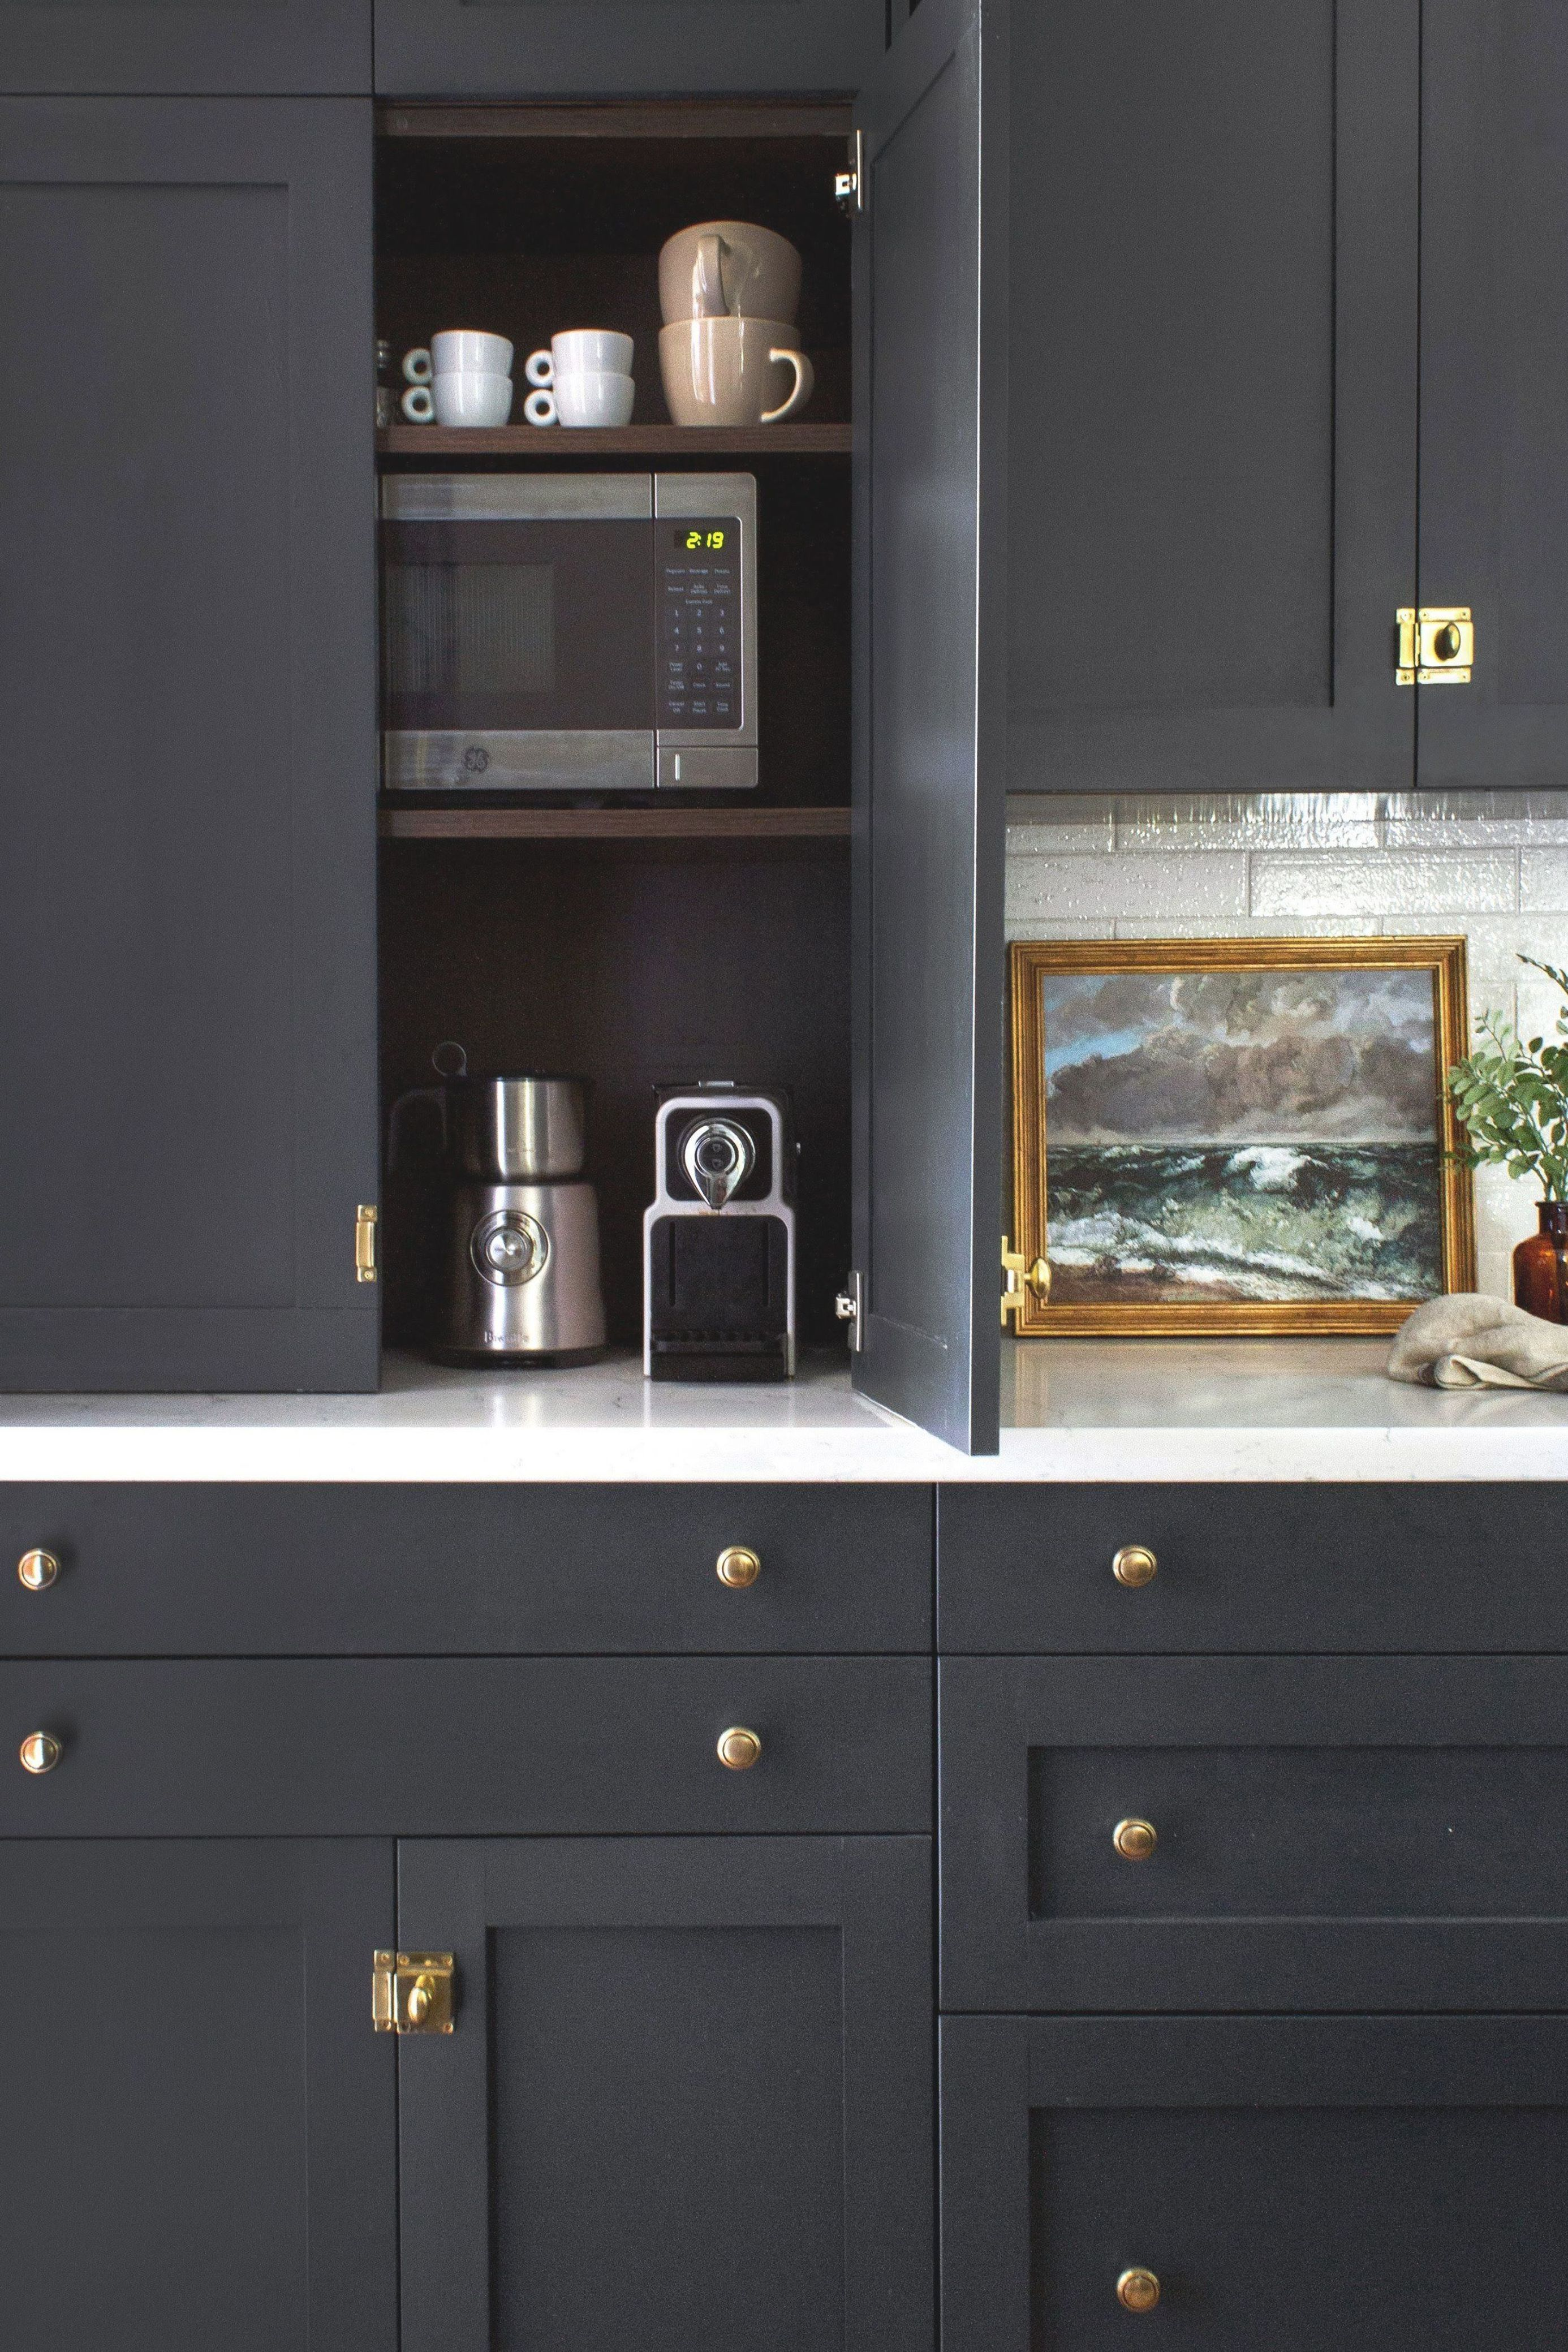 Tall Dark And Handsome Diy Shaker Cabinet Fronts By Semihandmade Complete This Victorian Kitchen Design In 2020 Kitchen Cabinetry Kitchen Cabinets Kitchen Interior